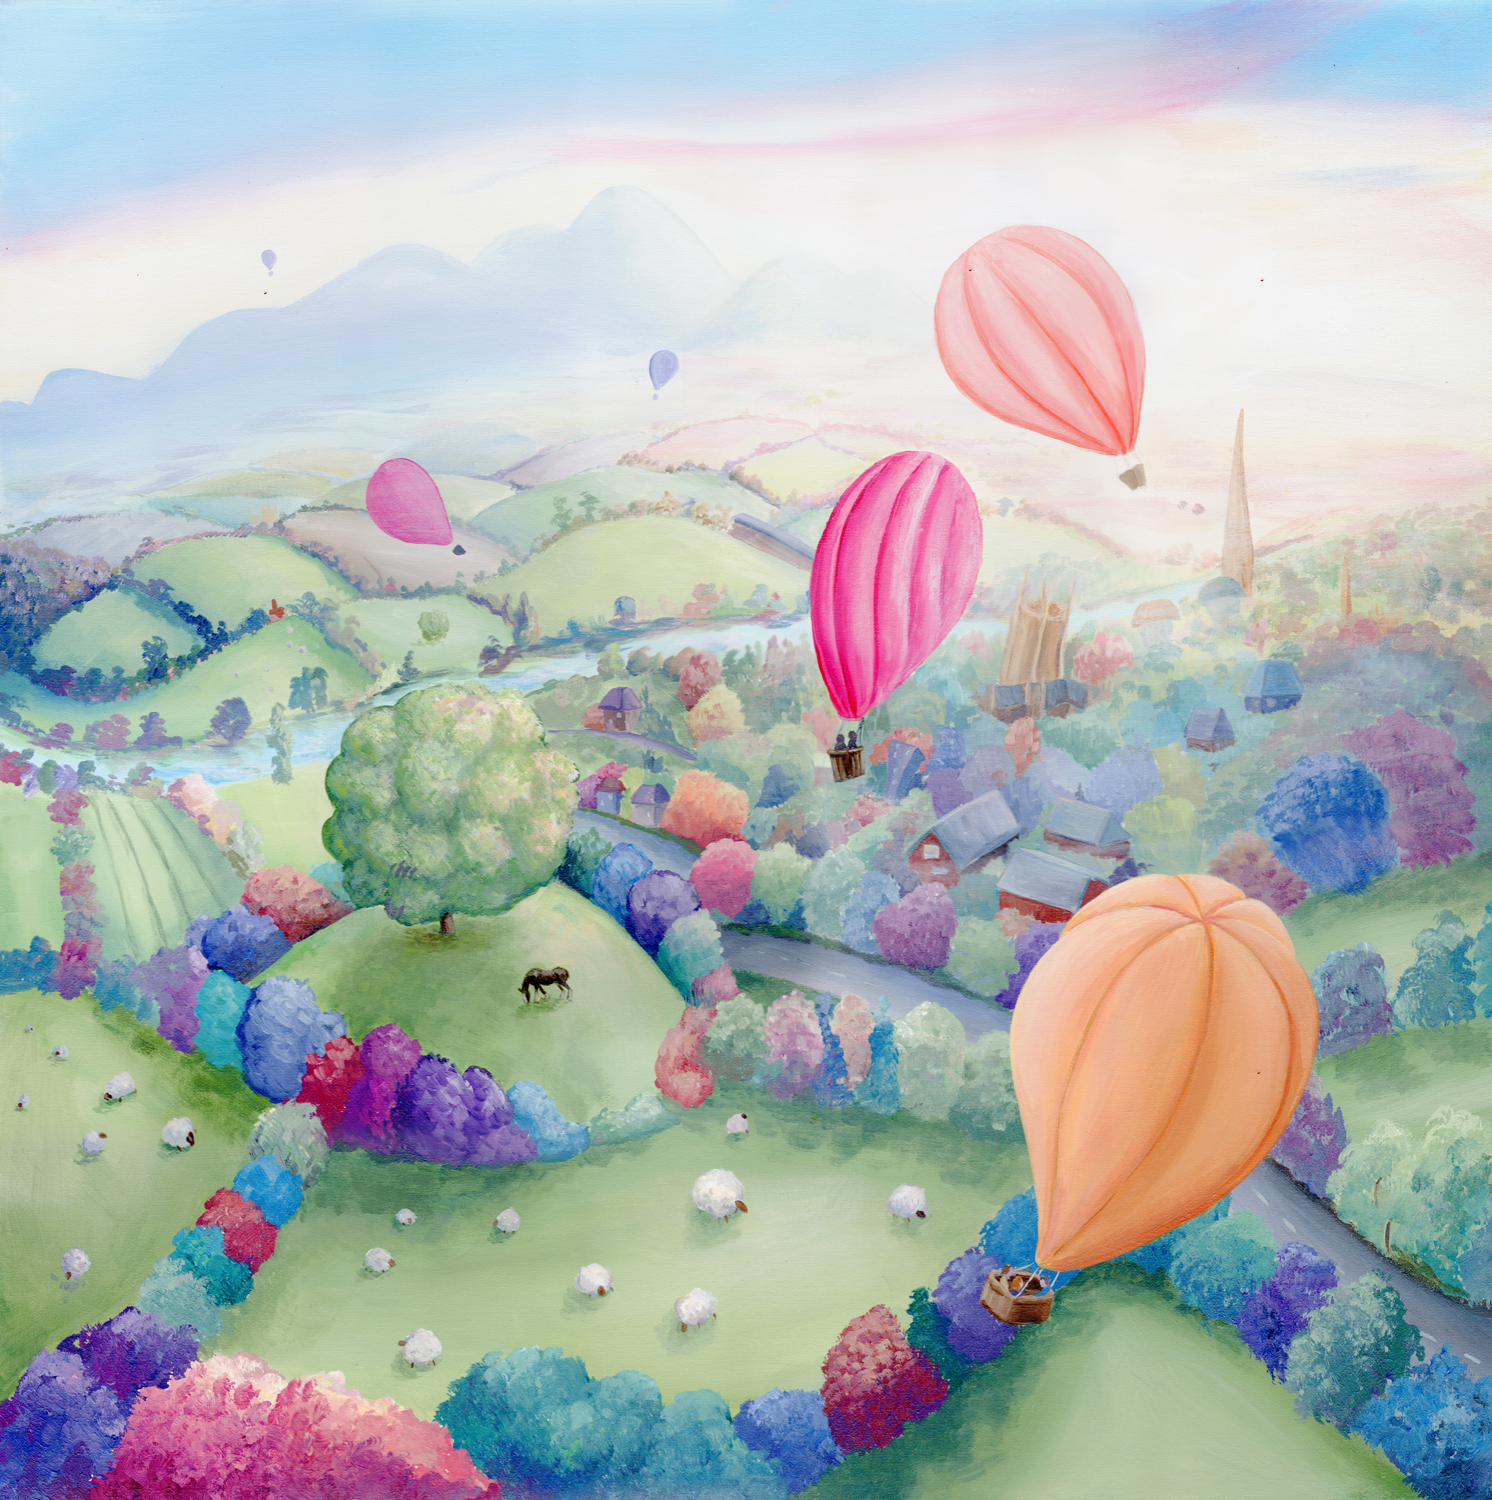 Balloon Days